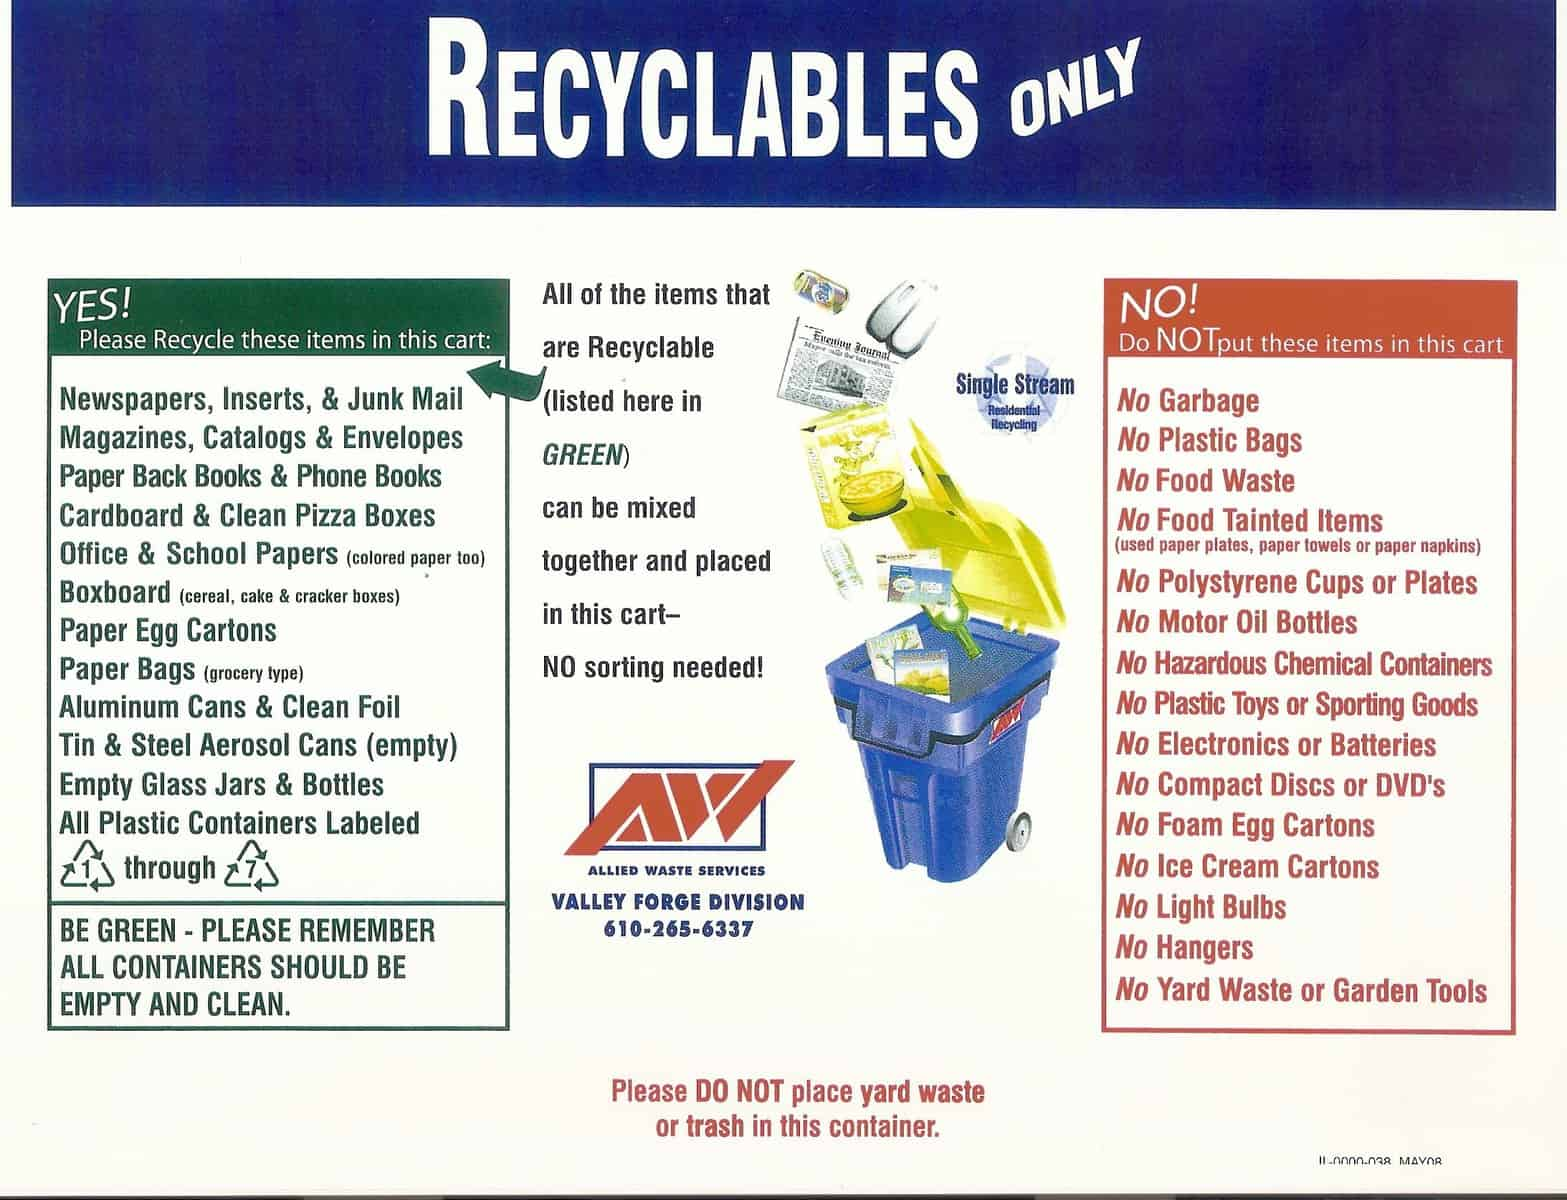 recycling dos and don'ts